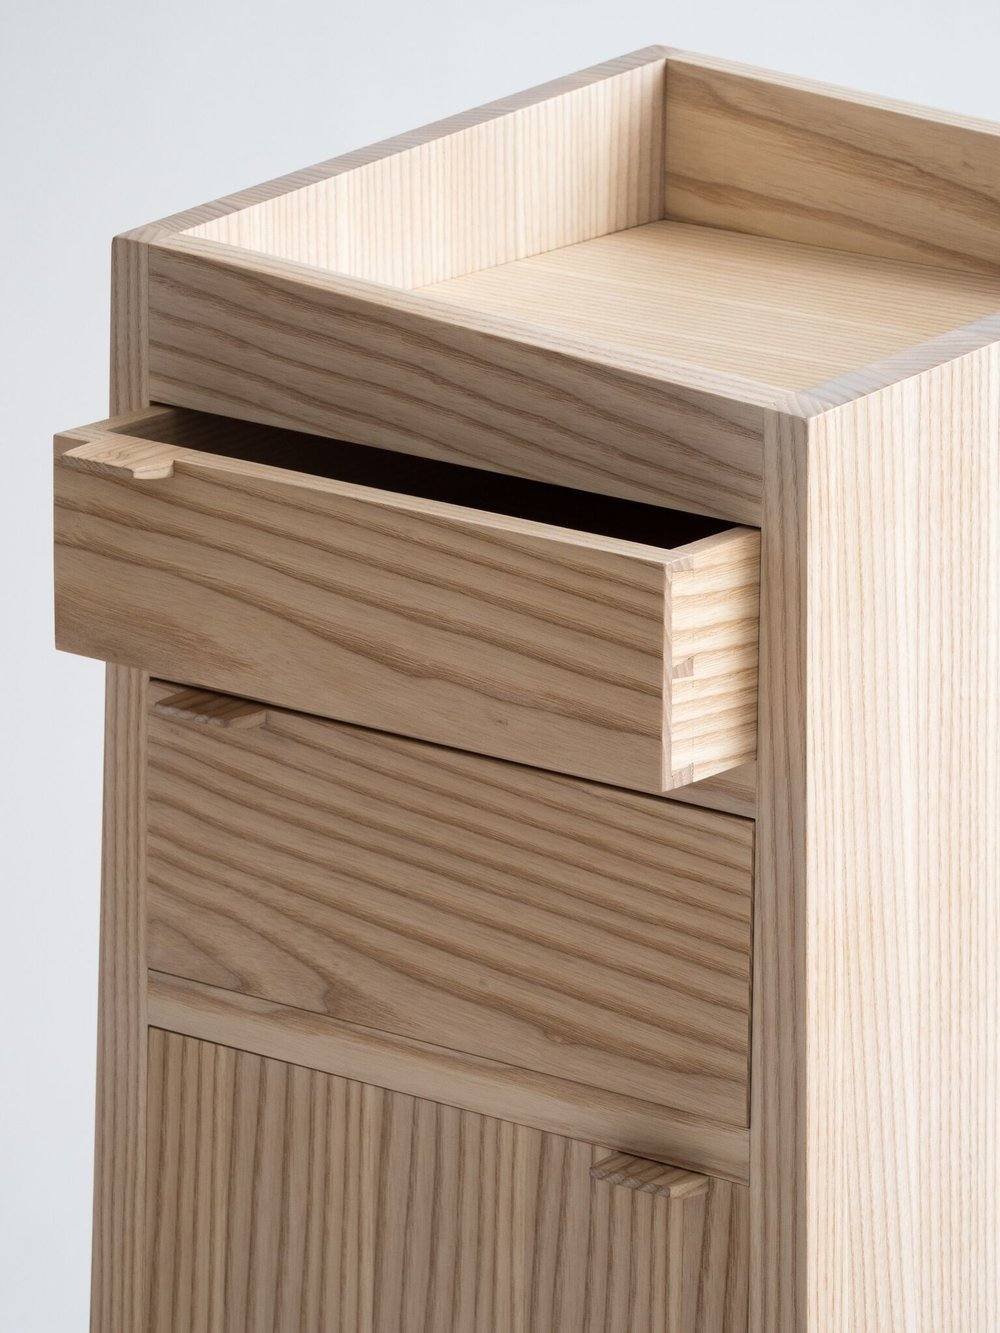 Dovetail drawers. White-washed ash. - Each drawer and door has a custom made pull tab with a subtle imprint for your thumb.This piece is also available in walnut, cherry, white oak and maple.For a quote please contact me.